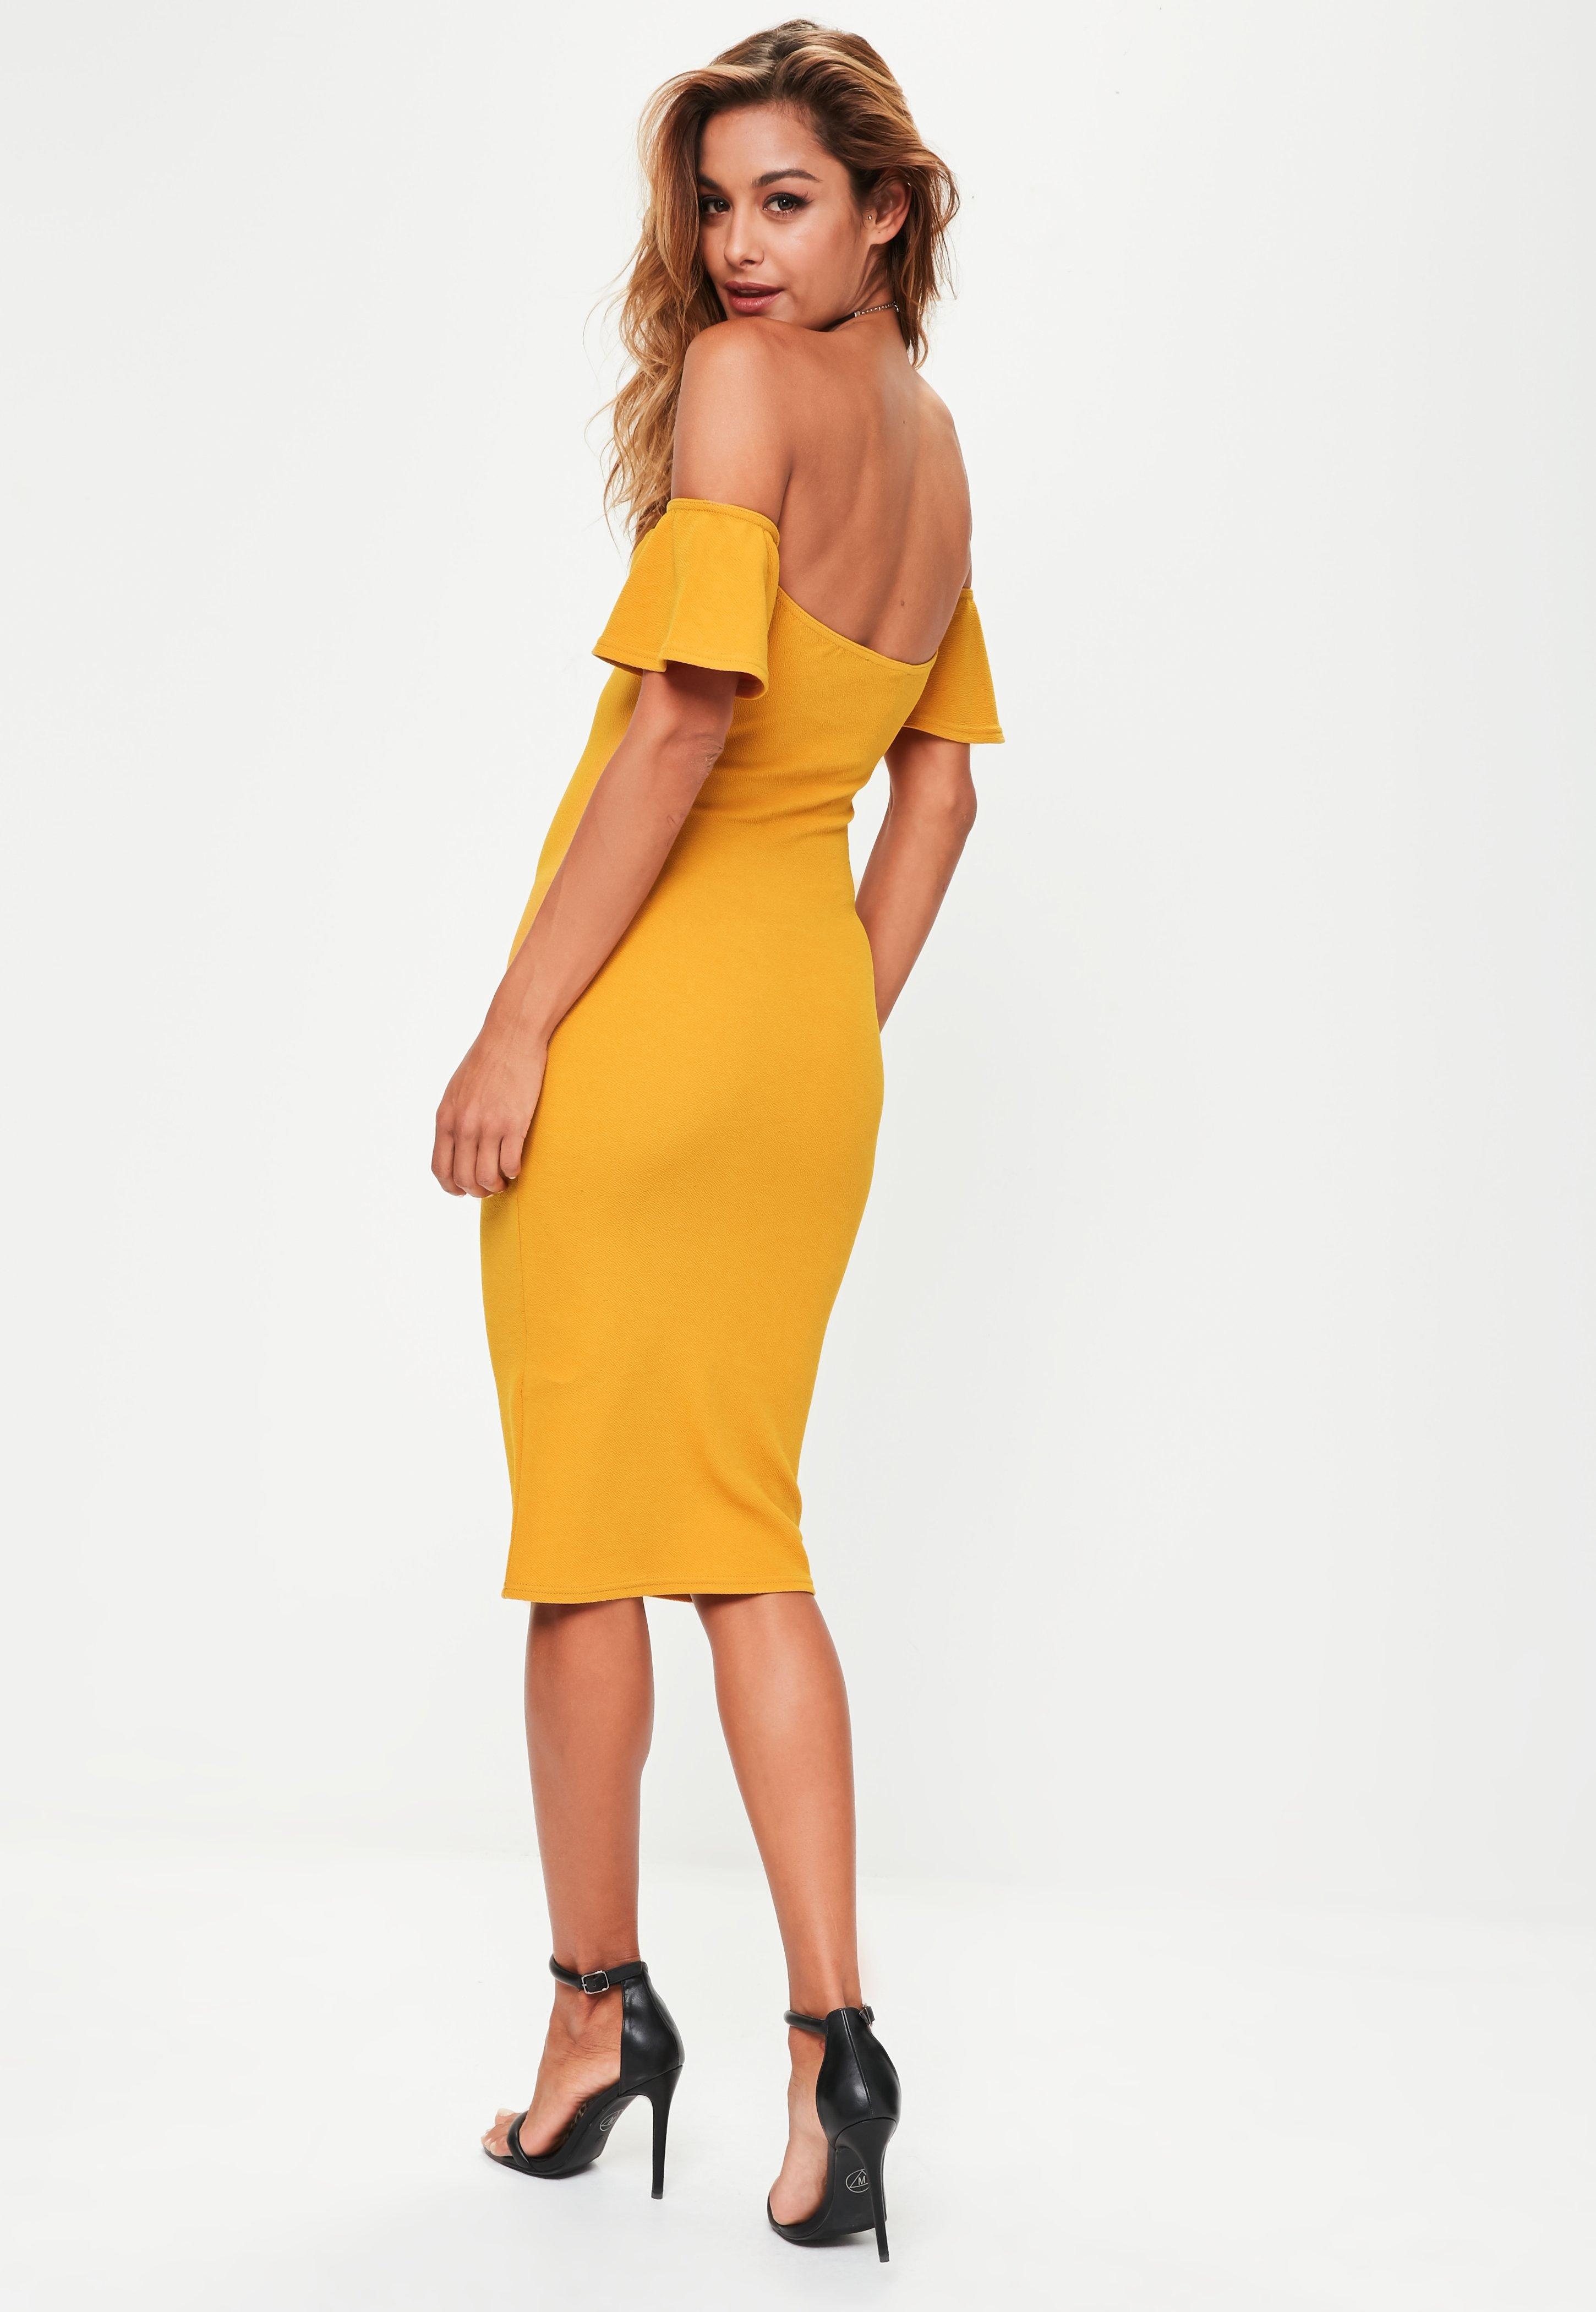 Yellow Dress Bodycon